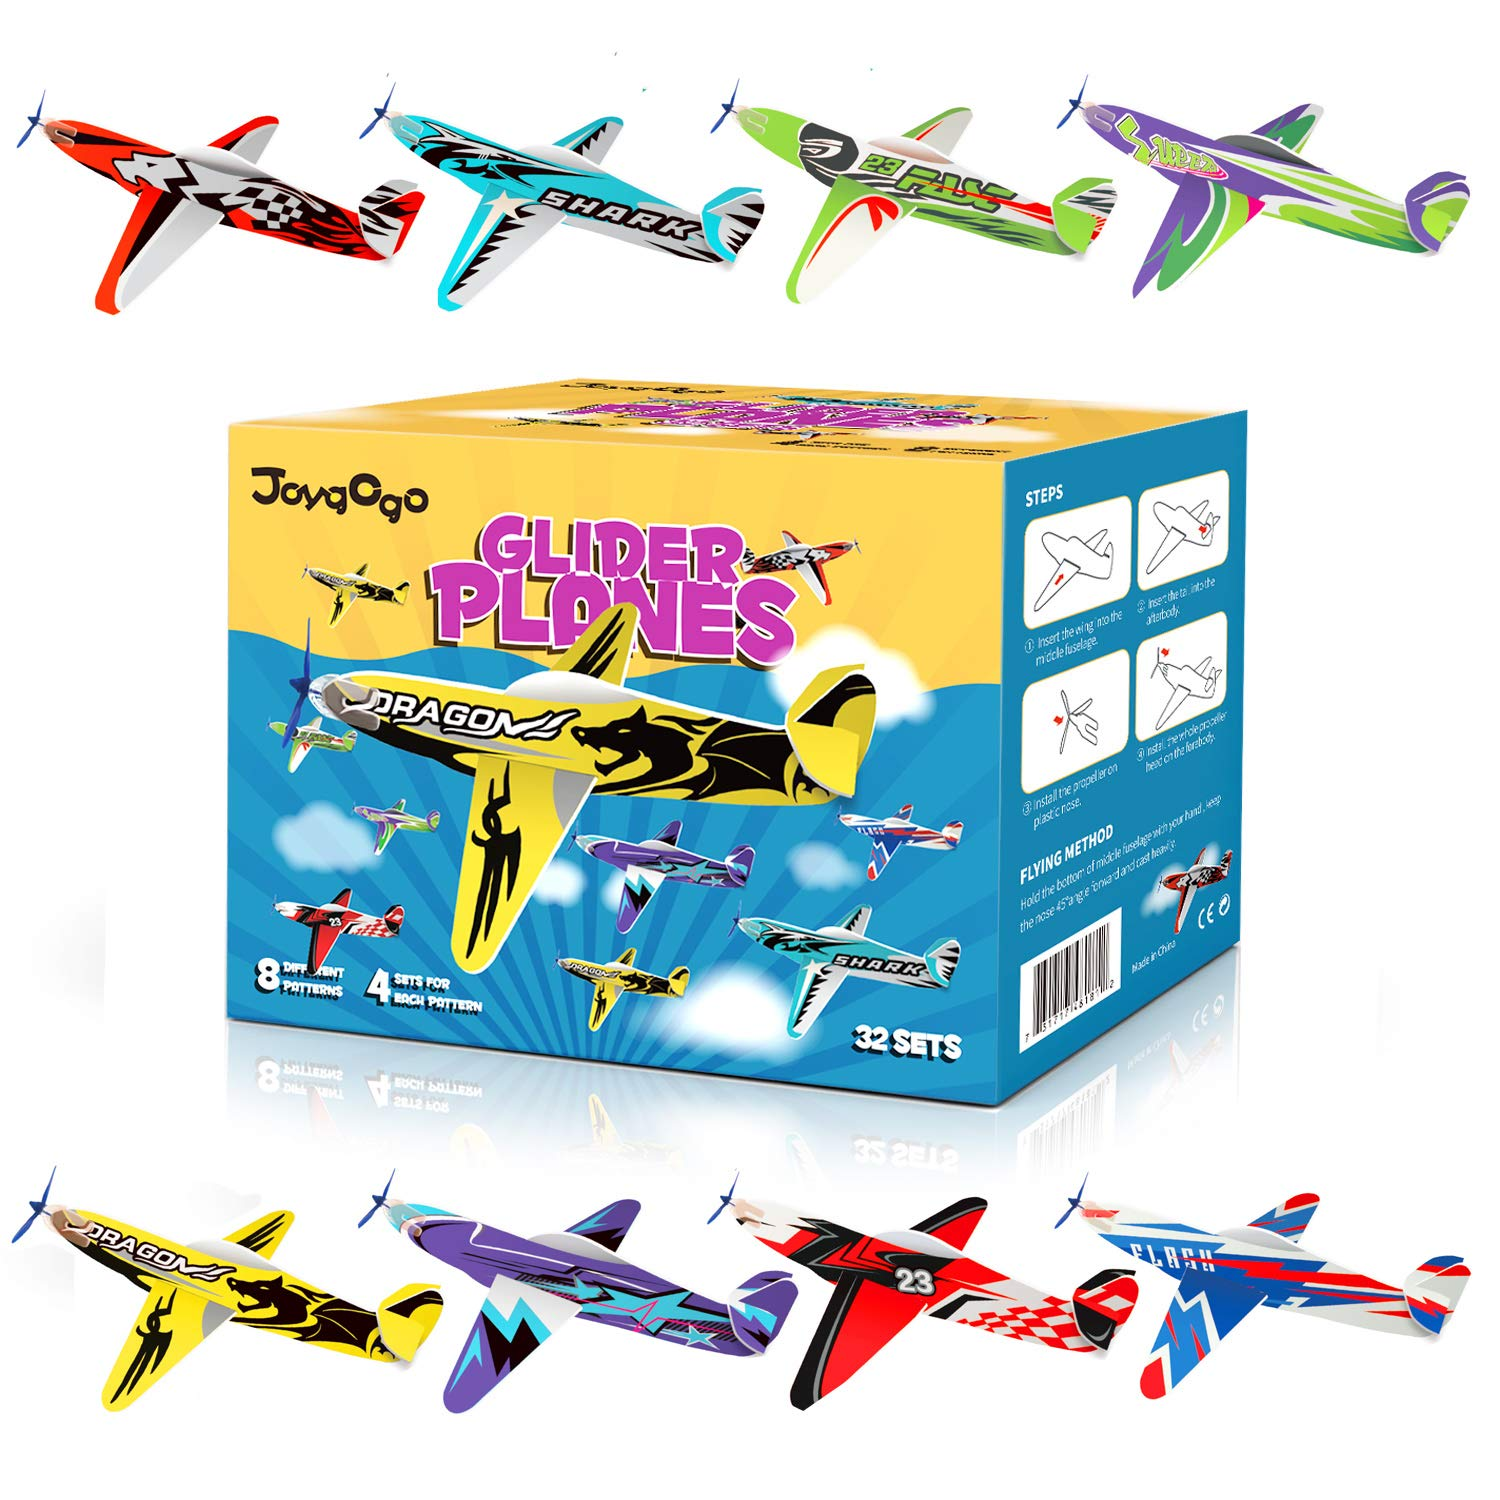 Joygogo 32 Pack Glider Planes,8'' Long Flying Glider Plane,8 Different Designs,Easy Assembly,Durable Quality-Kids Party Favors for Valentines Airplanes,Birthday Party, Carnival Prizes